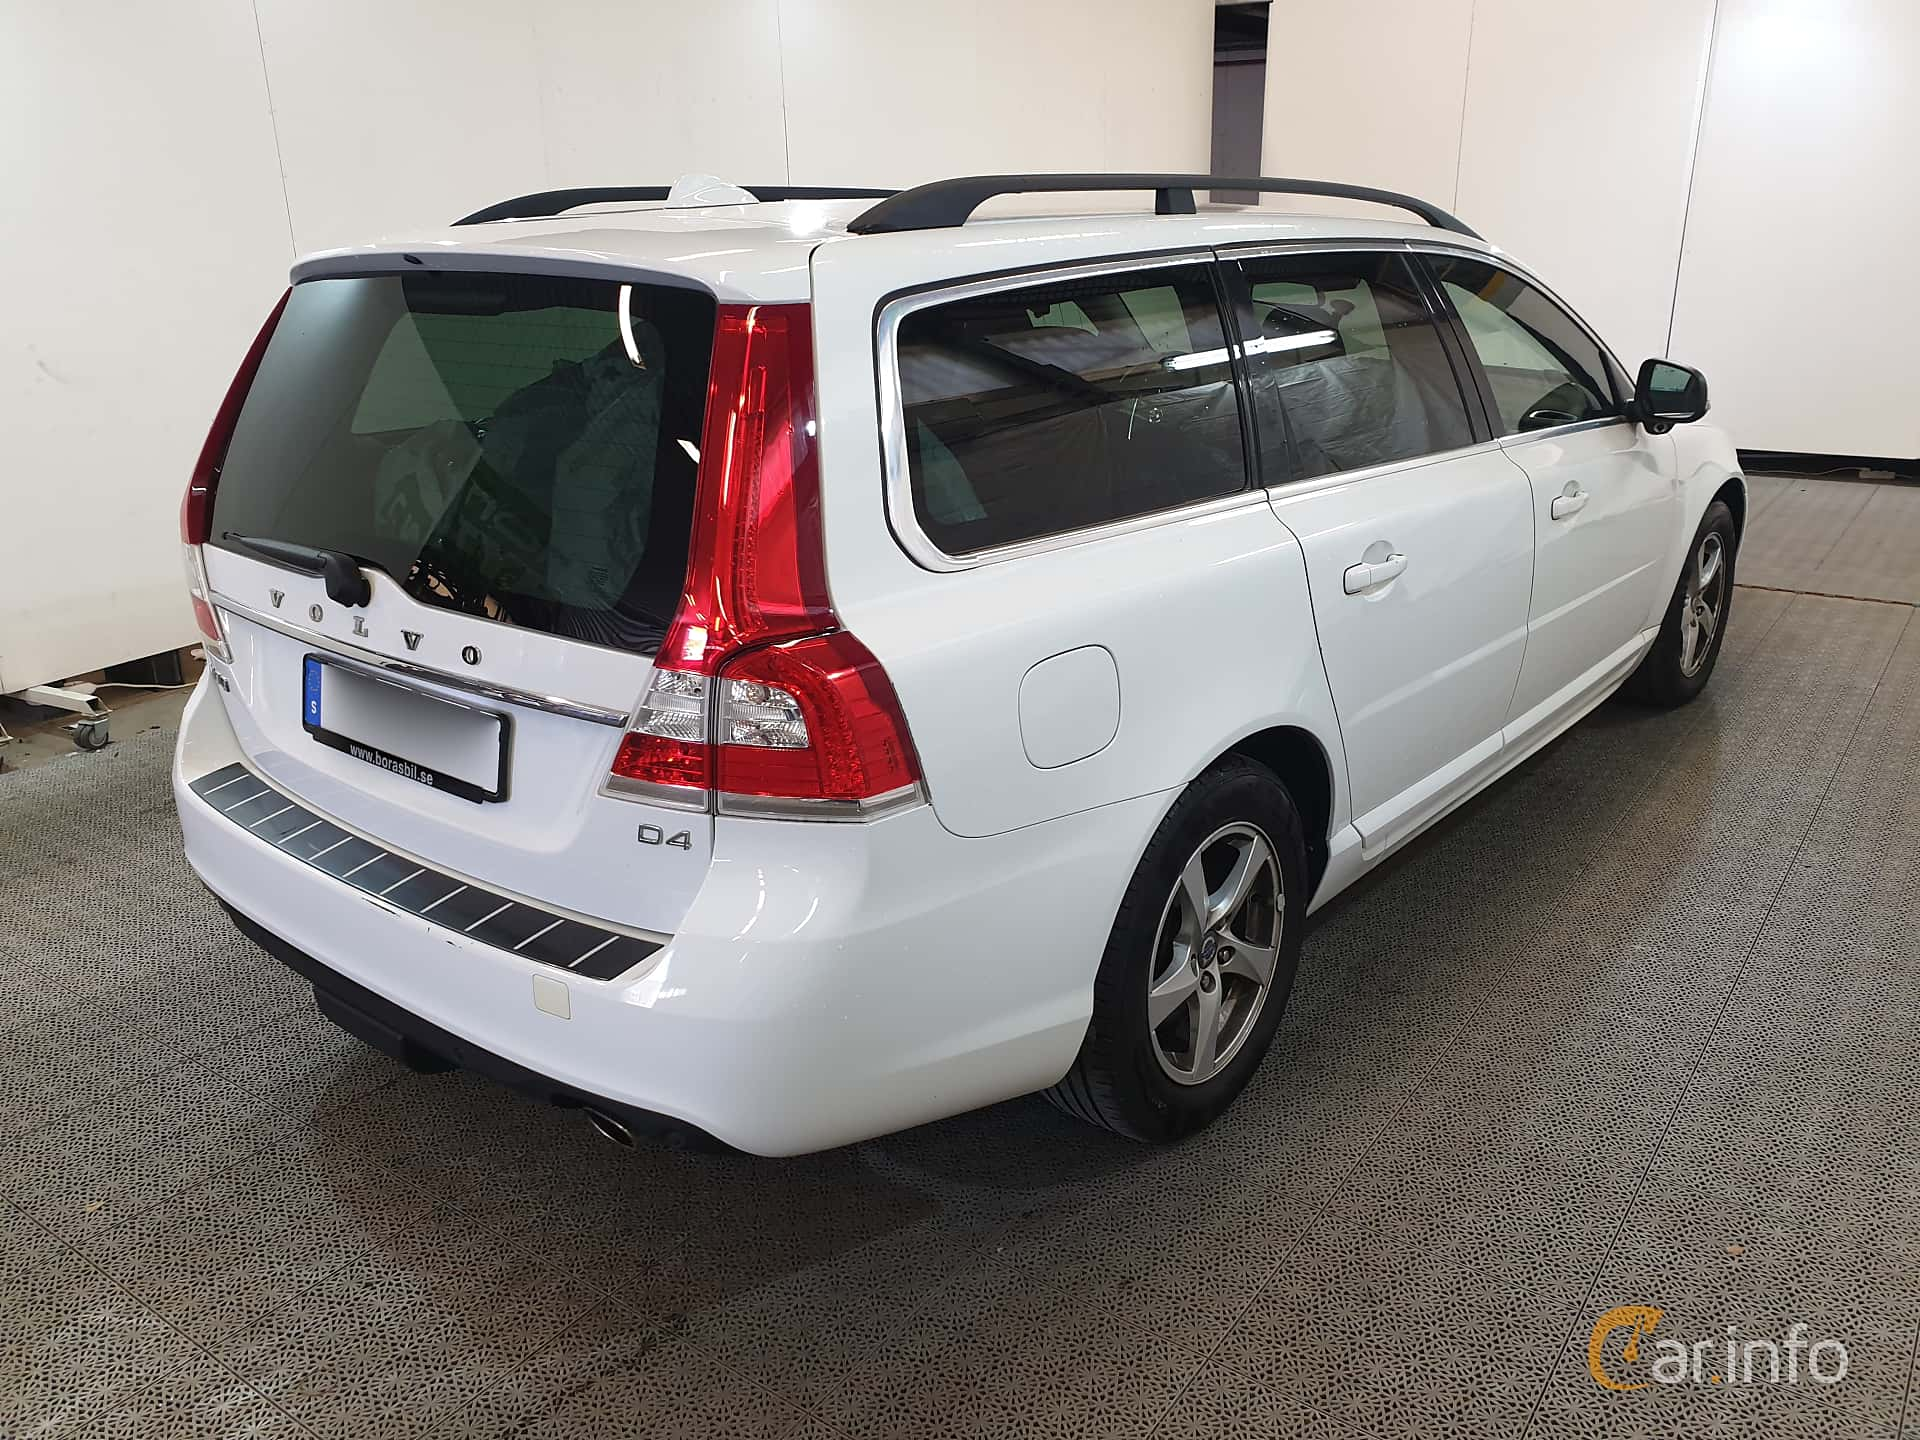 Volvo V70 D4 Geartronic, 181hp, 2015